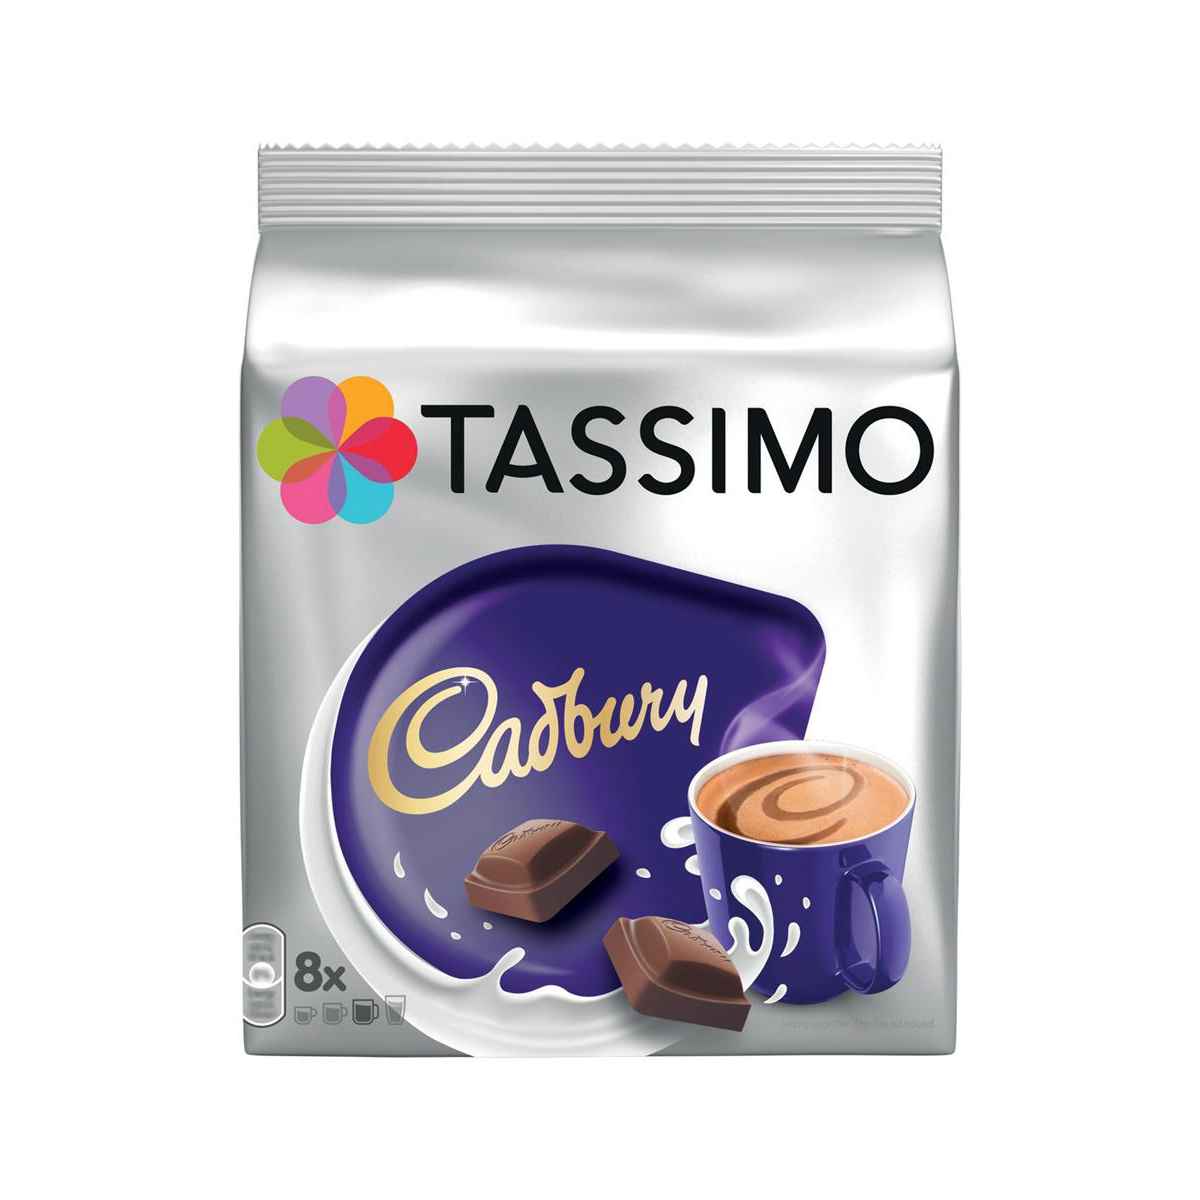 Tassimo Cadbury Hot Chocolate Pods 8 Servings Per Pack Ref 4031638 [Pack 5 x 8]